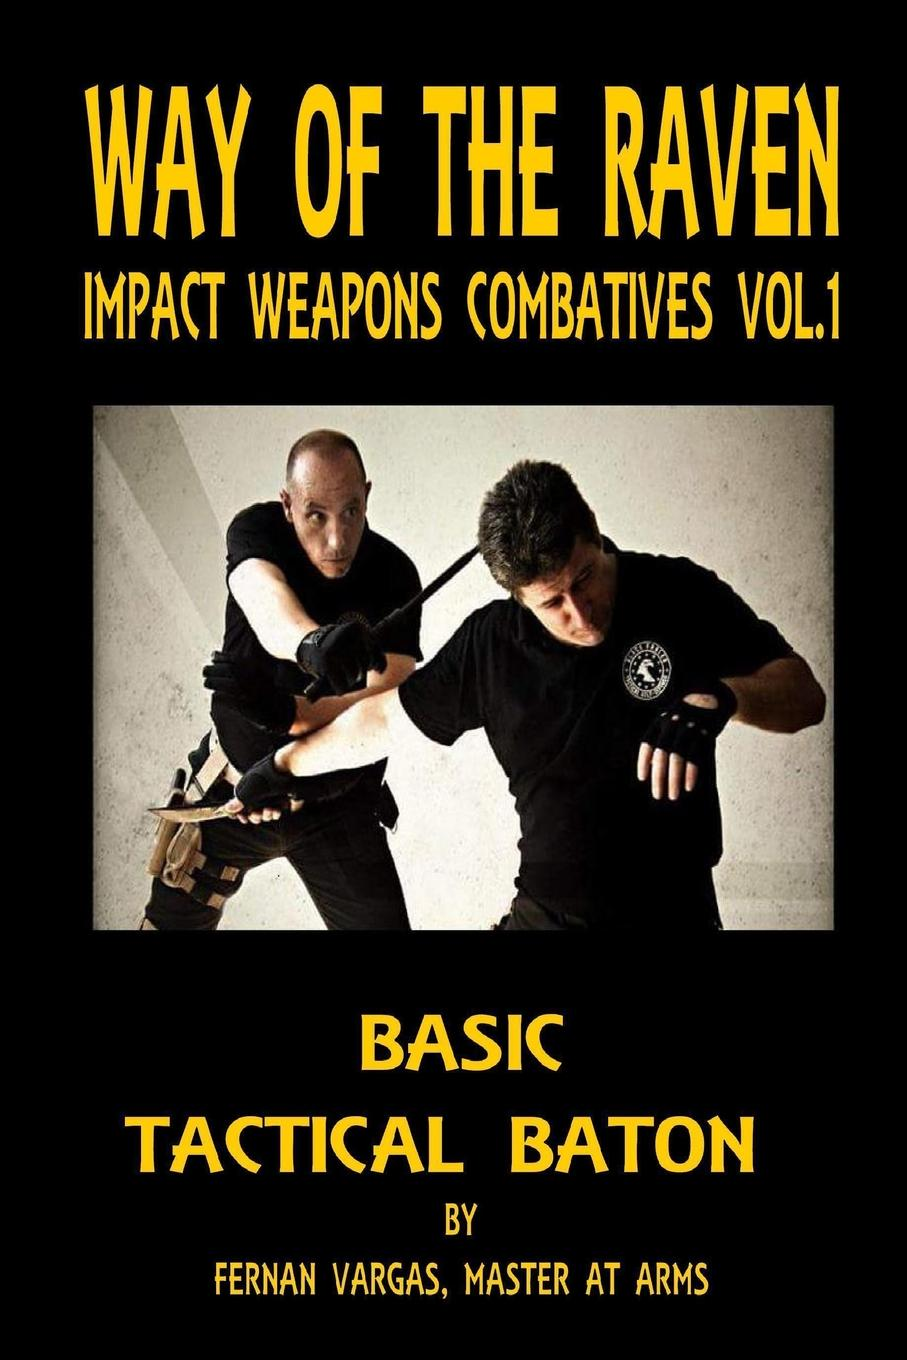 Fernan Vargas Way of the Raven Impact Weapons Volume One. Basic Tactical Baton weapons of fitness